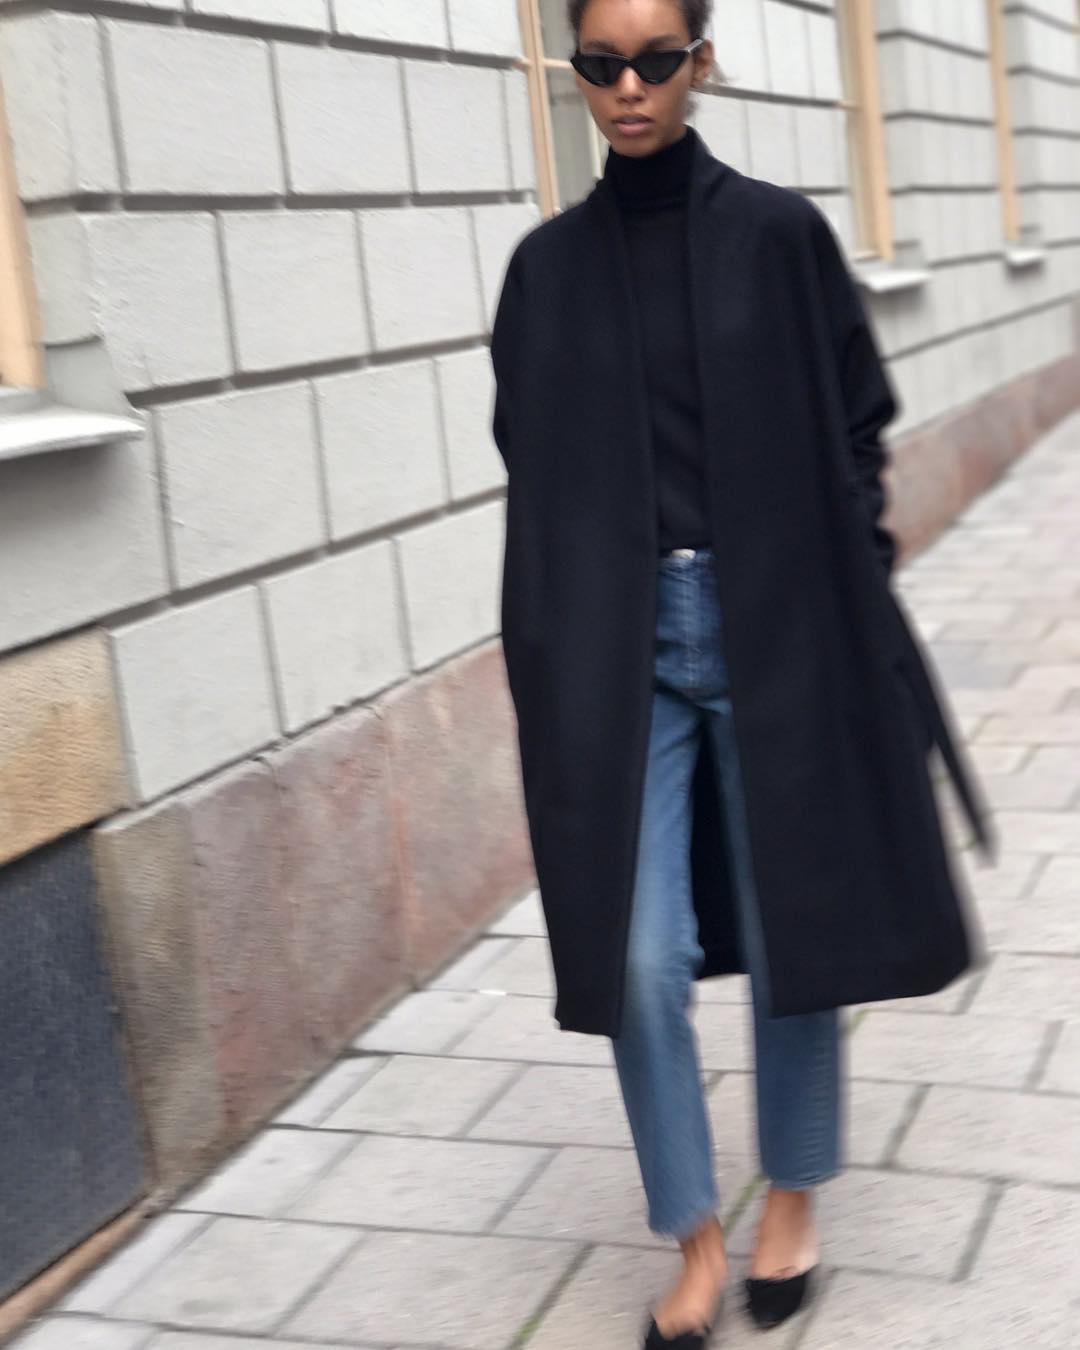 The Minimalist Outfit We Want to Live In for Fall — Black Coat, Turtleneck, Jeans, Mule Flats